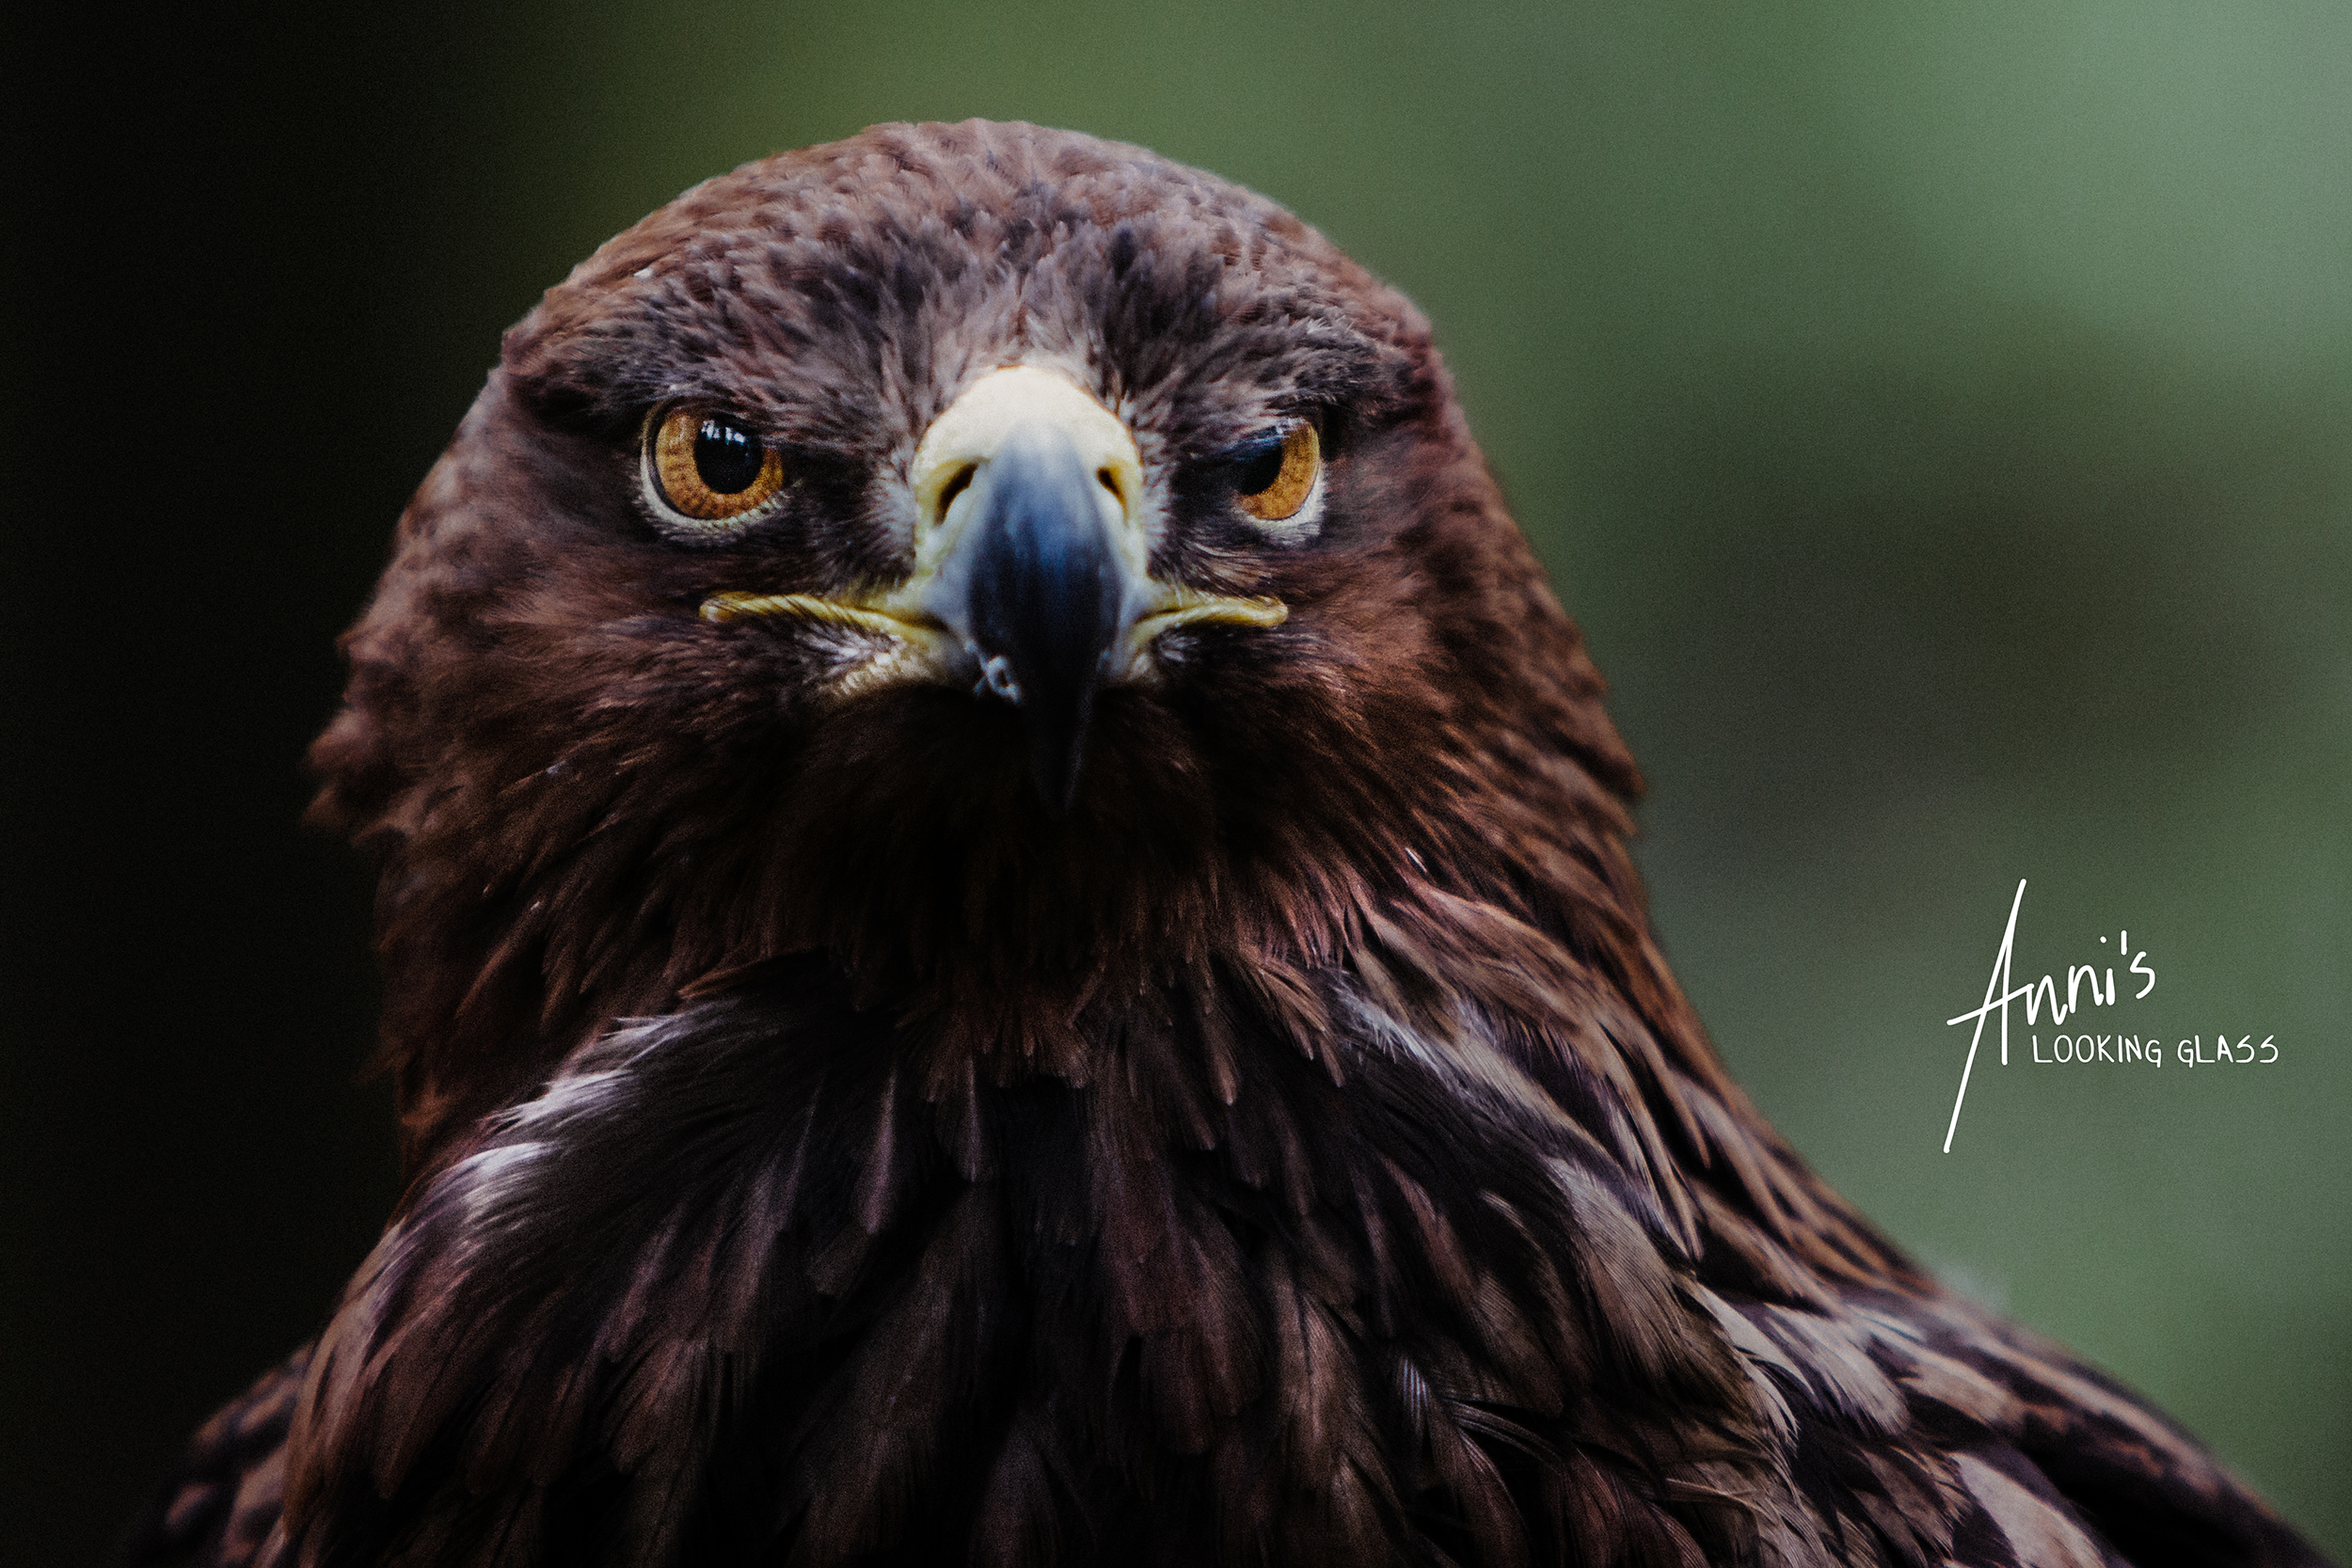 A Golden Eagle at Rosliston Forestry Centre in Derbyshire